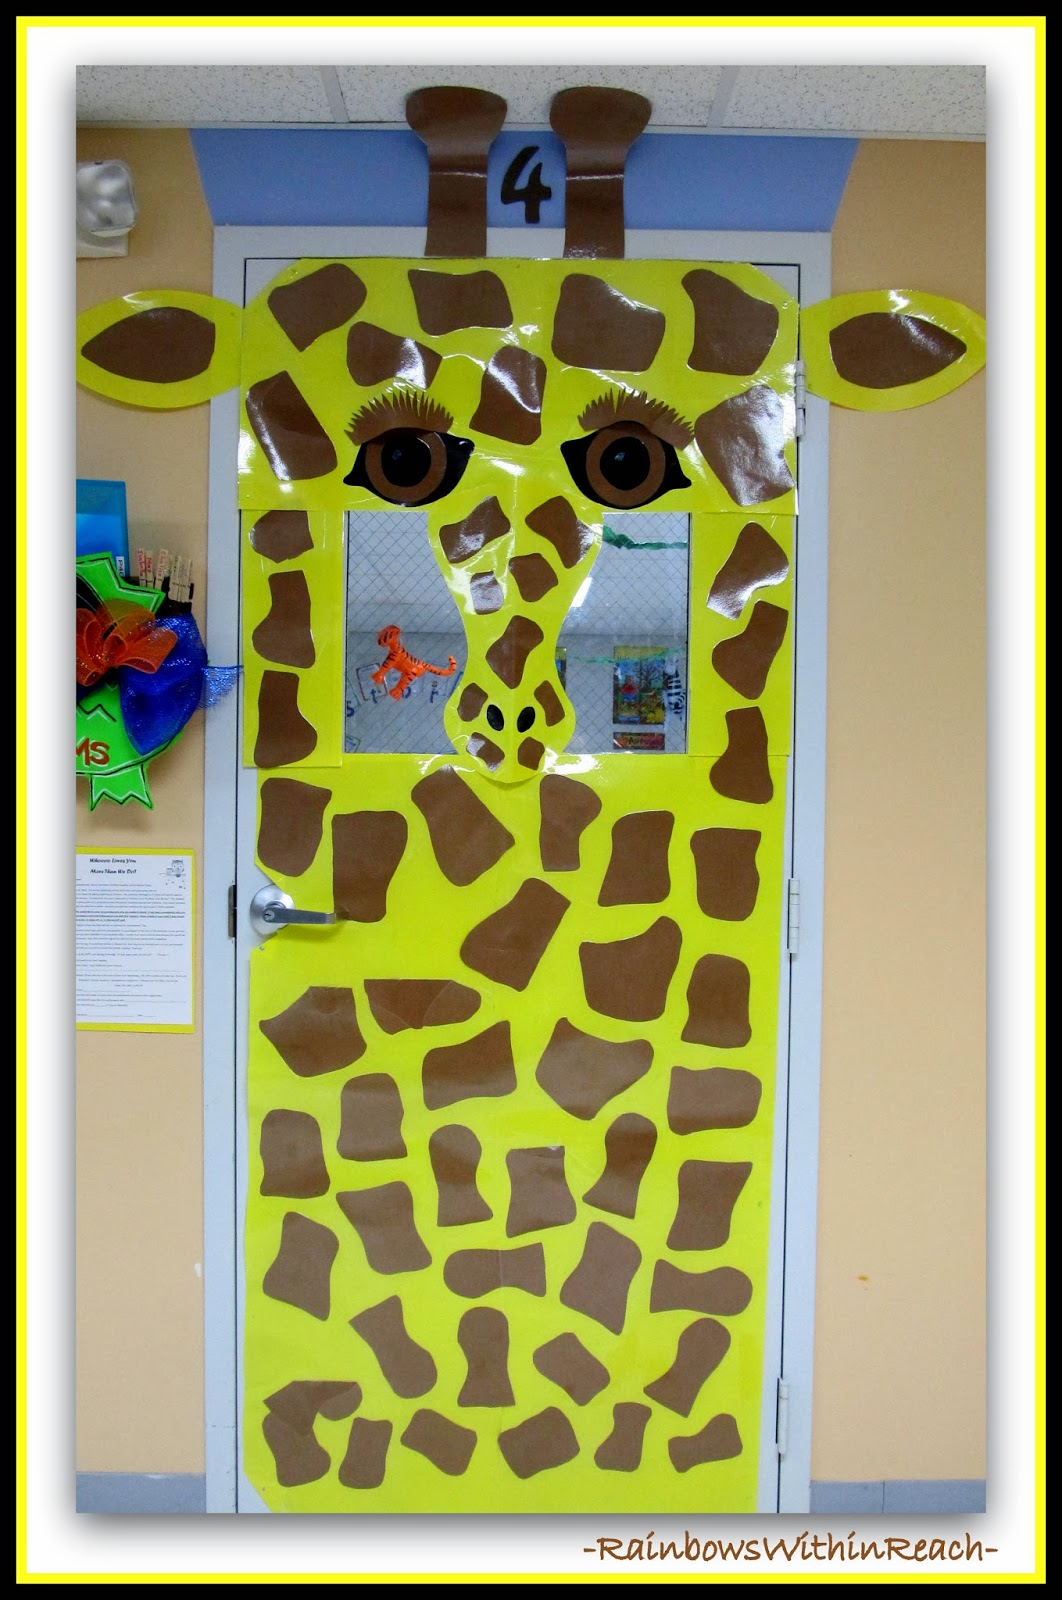 Rainbowswithinreach Jungle Animals As Door Decorations In